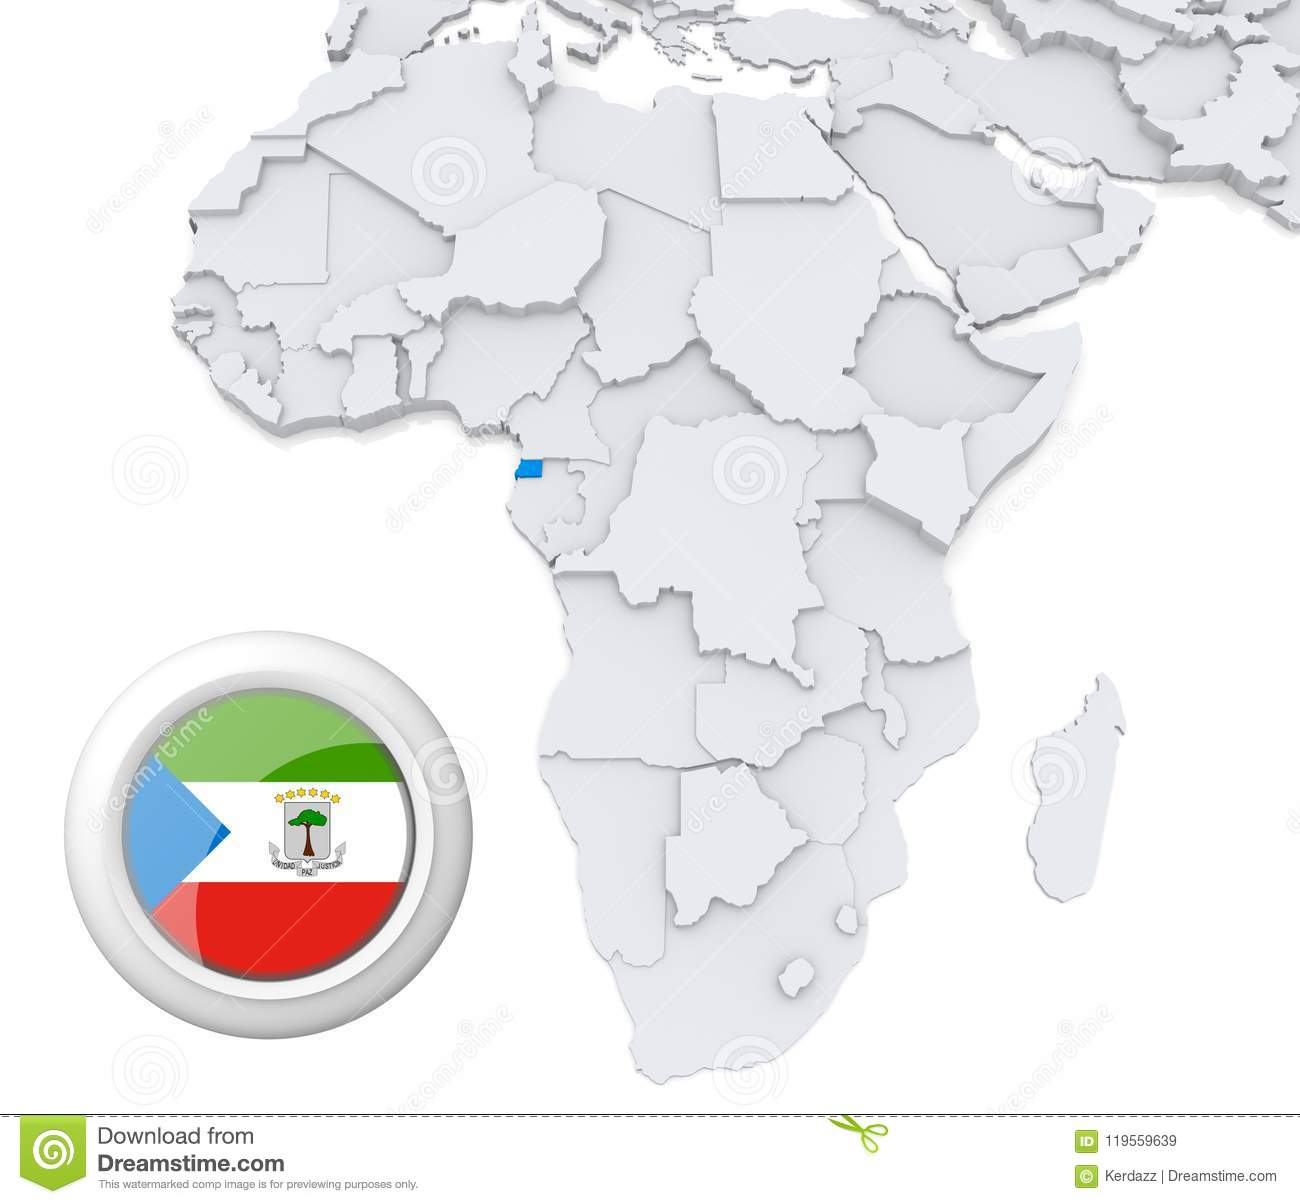 Equatorial Guinea On Africa Map Stock Illustration ... on equatorial guinea africa, ghana world map, cape verde world map, equatorial guinea on map south america, malabo map, equator location on map, heremakono on the location of guinea africa map, tunisia world map,